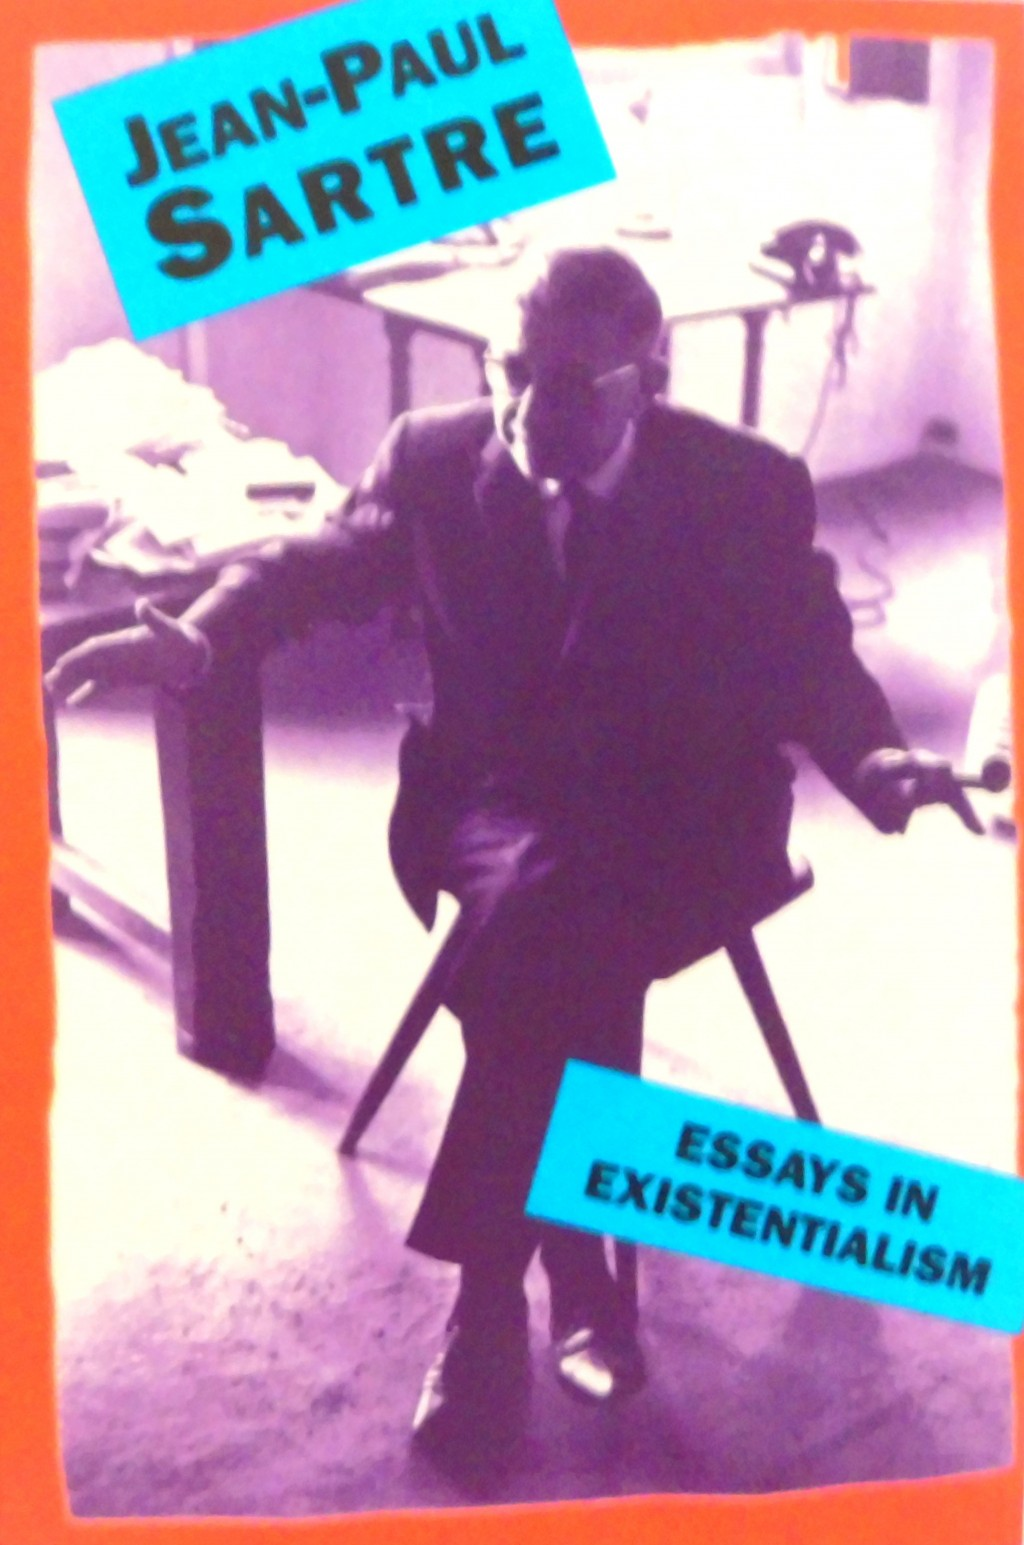 007 X Essay Example Essays In Outstanding Existentialism Pdf Sartre Large